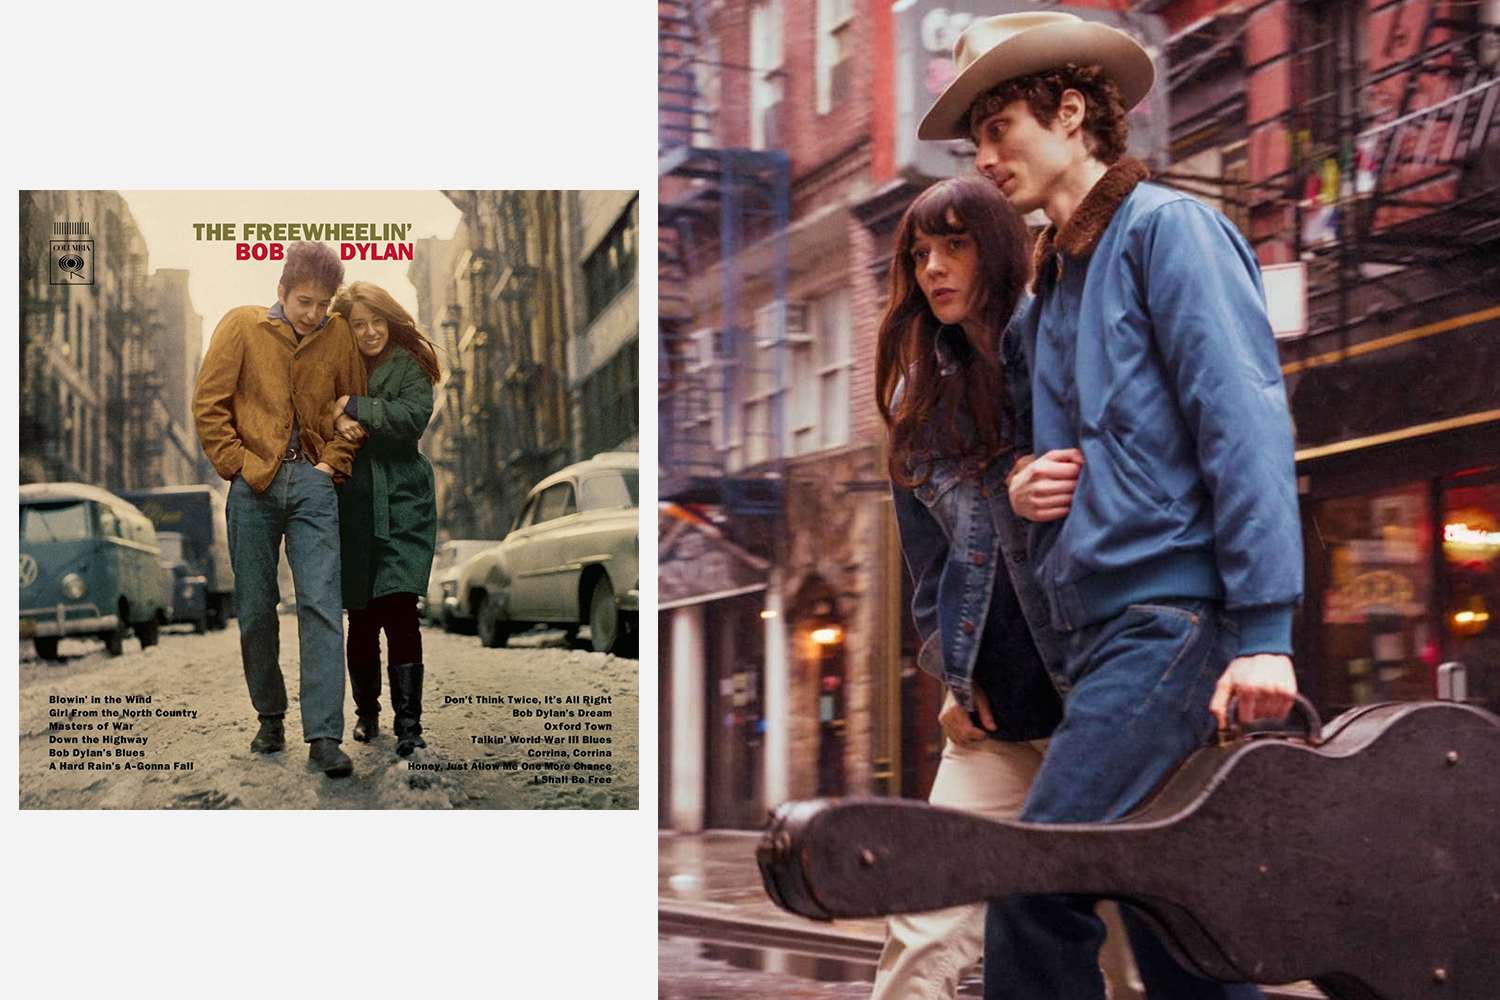 the freewhelin' bob dylan levi's folk city collection